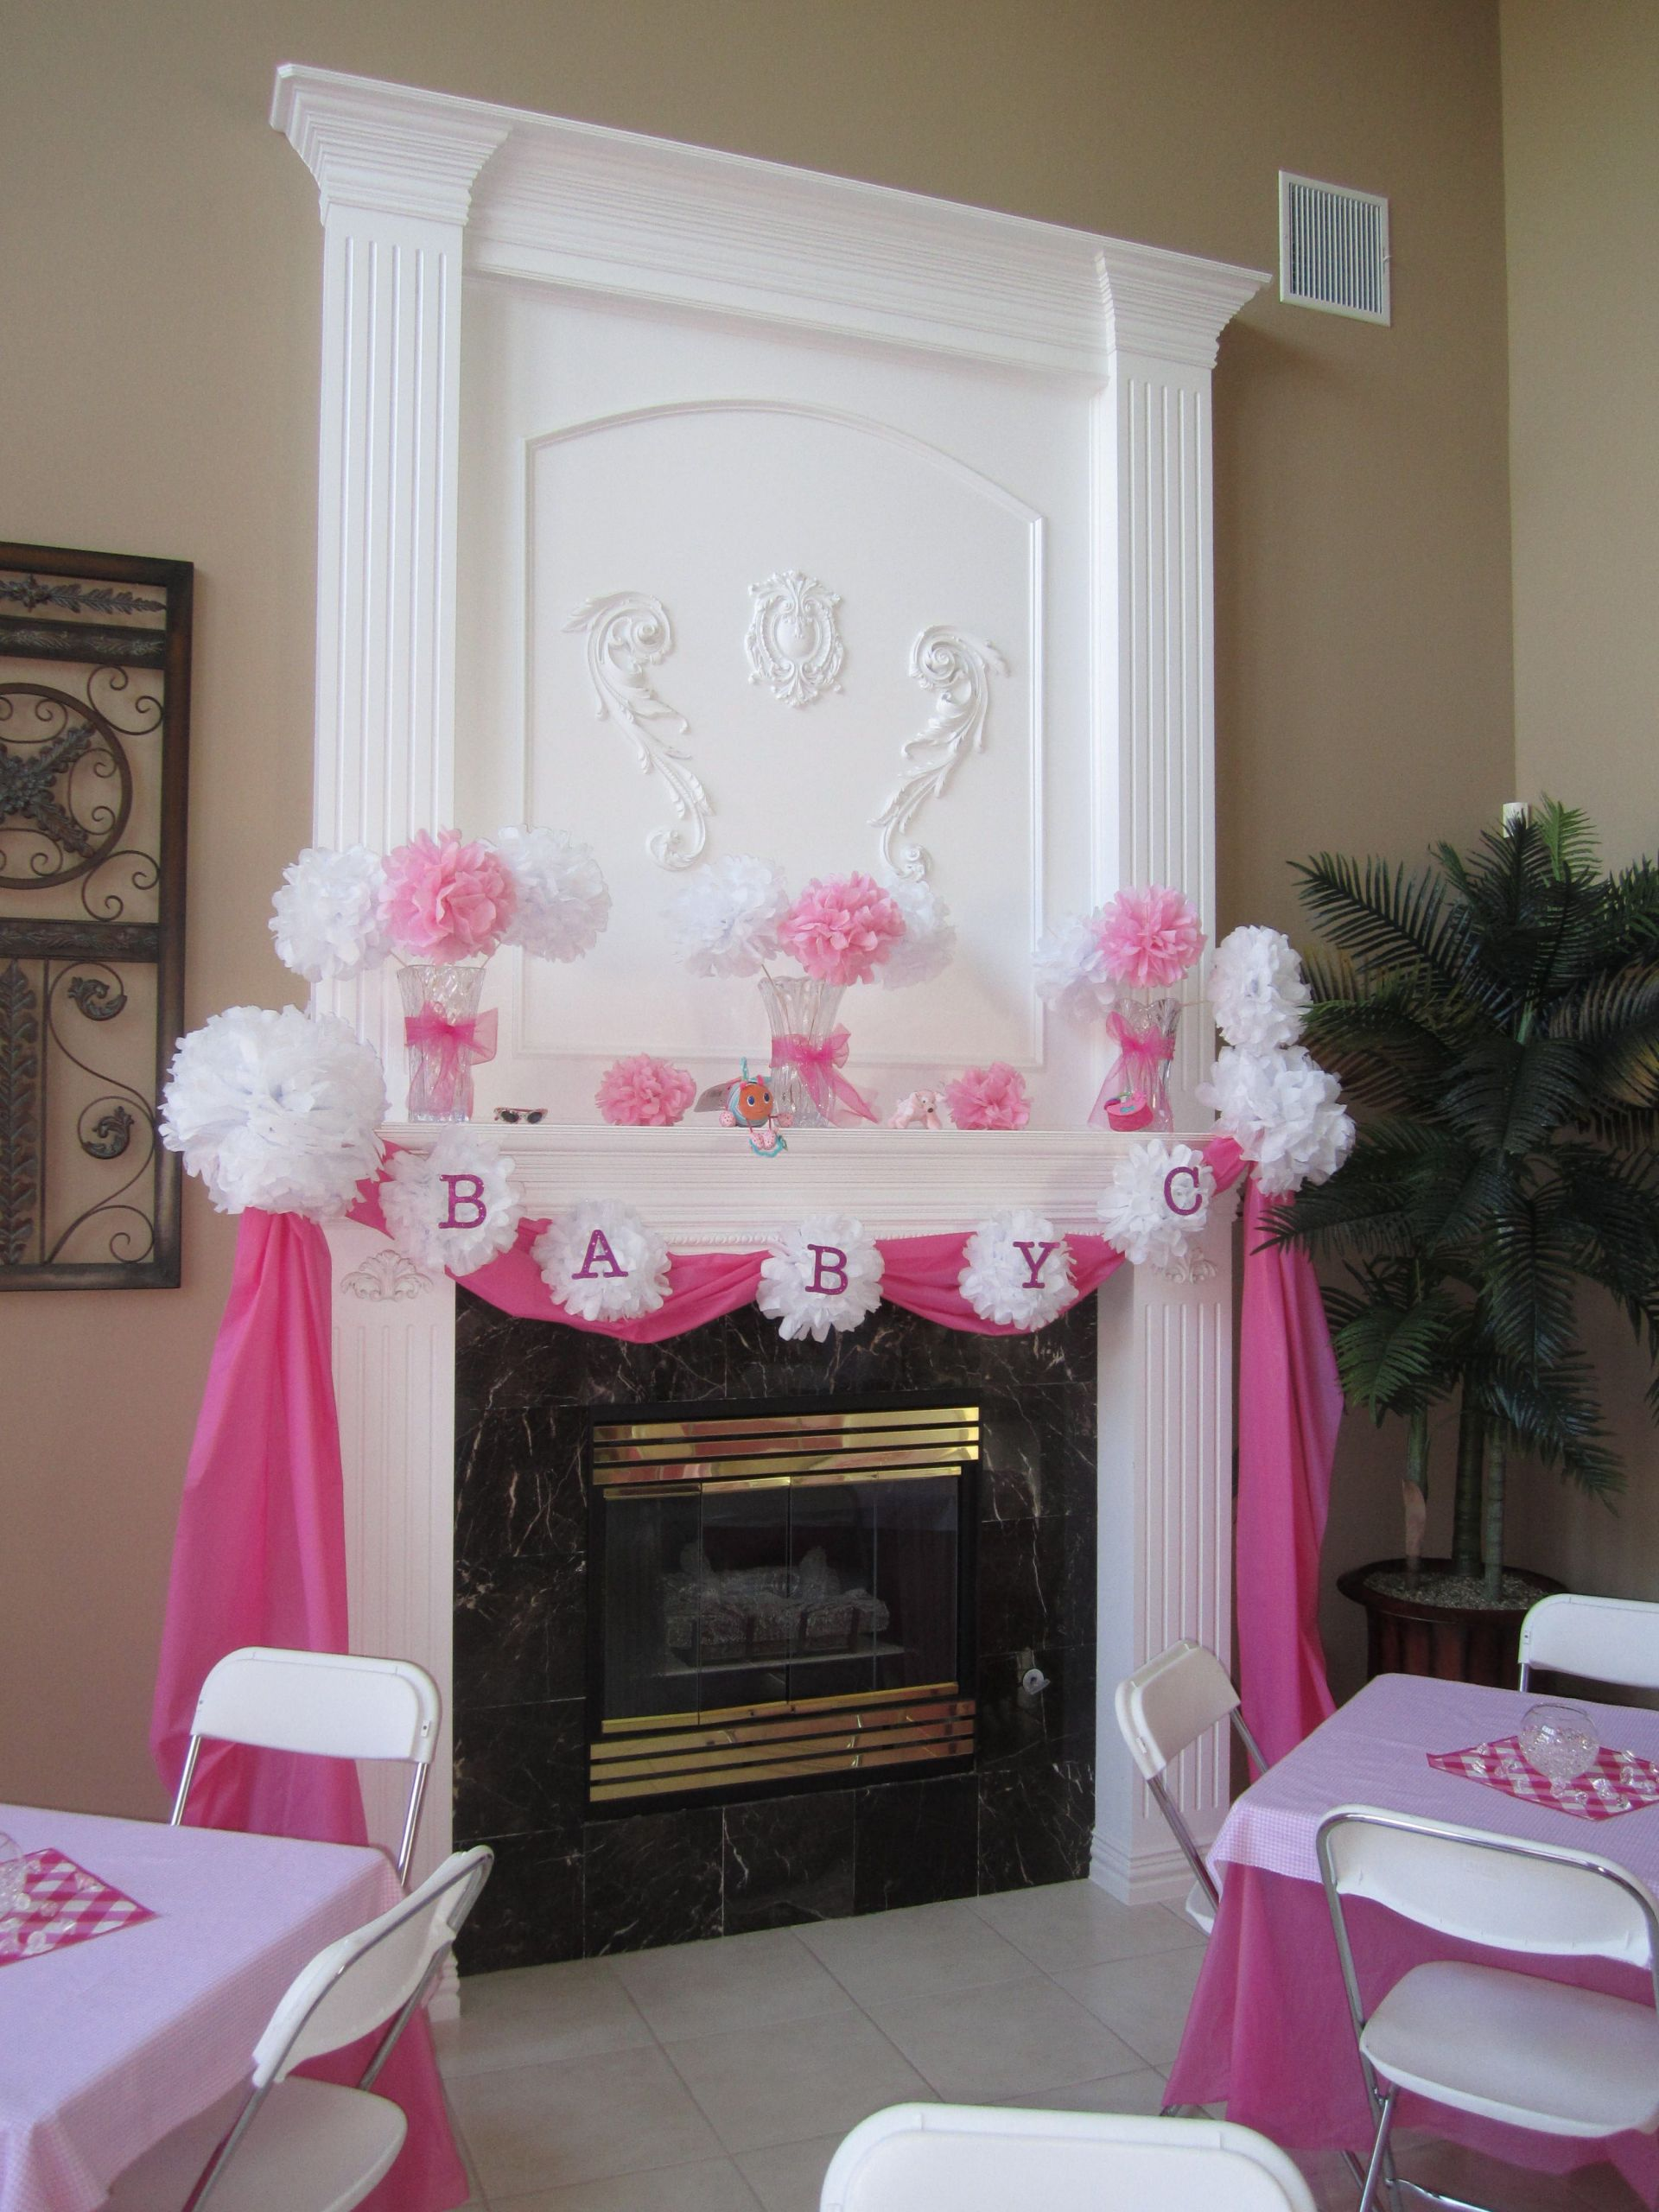 Baby Shower Decoration Ideas For A Girl  DIY Baby Shower Ideas for Girls